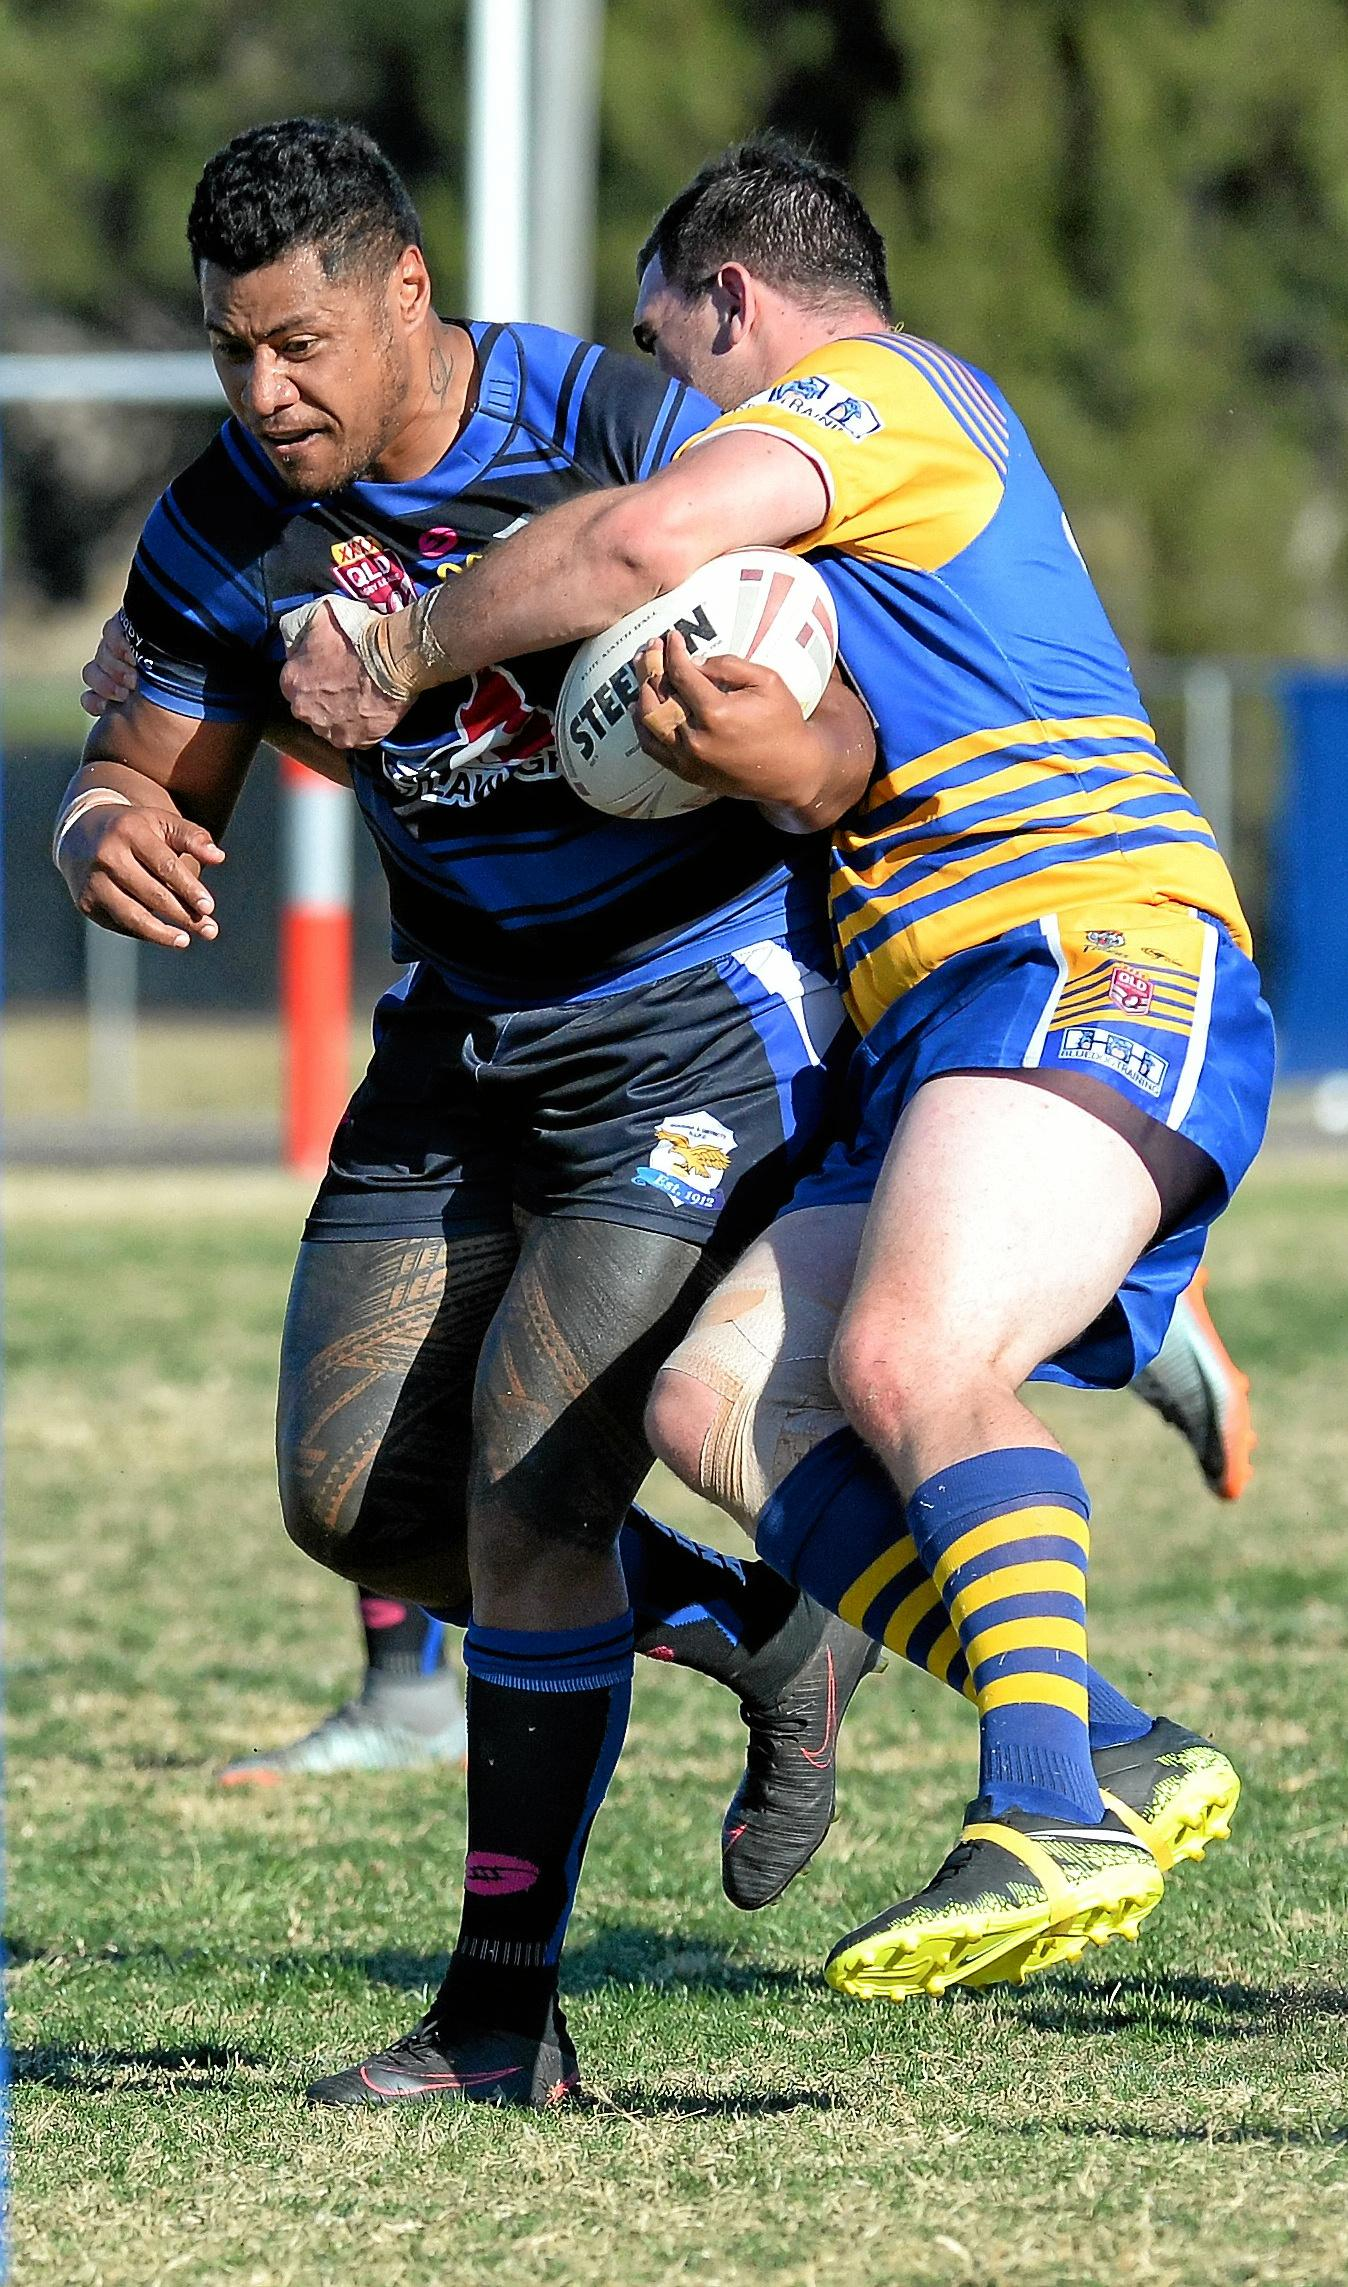 SIDELINED: Goodna Eagles president and premiership-winning captain Ramon Filipine has been handed a 12 month ban by Rugby League Ipswich.